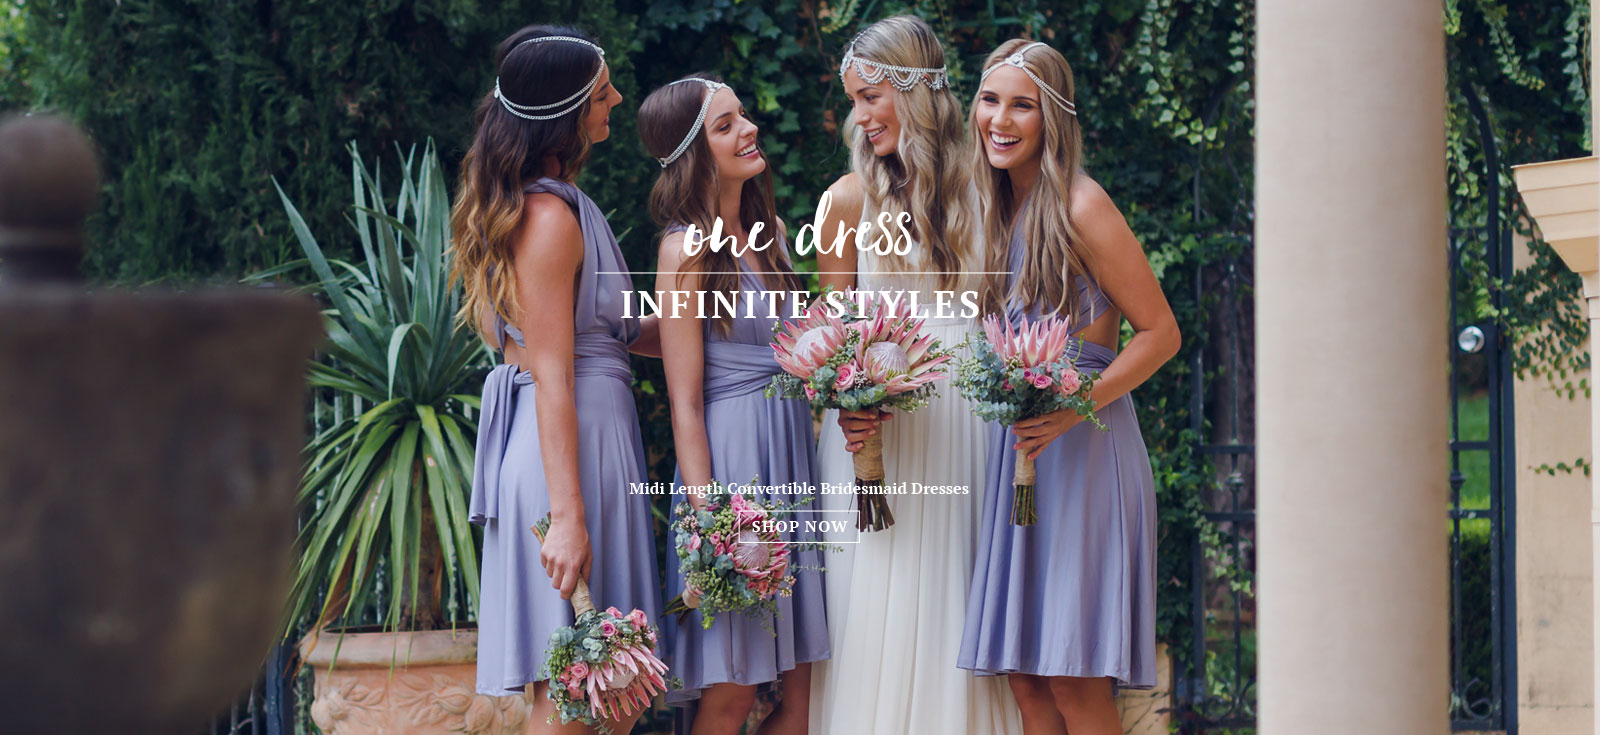 Multi way wrap convertible bridesmaid dresses online australia bridesmaids dresses online australia ombrellifo Choice Image